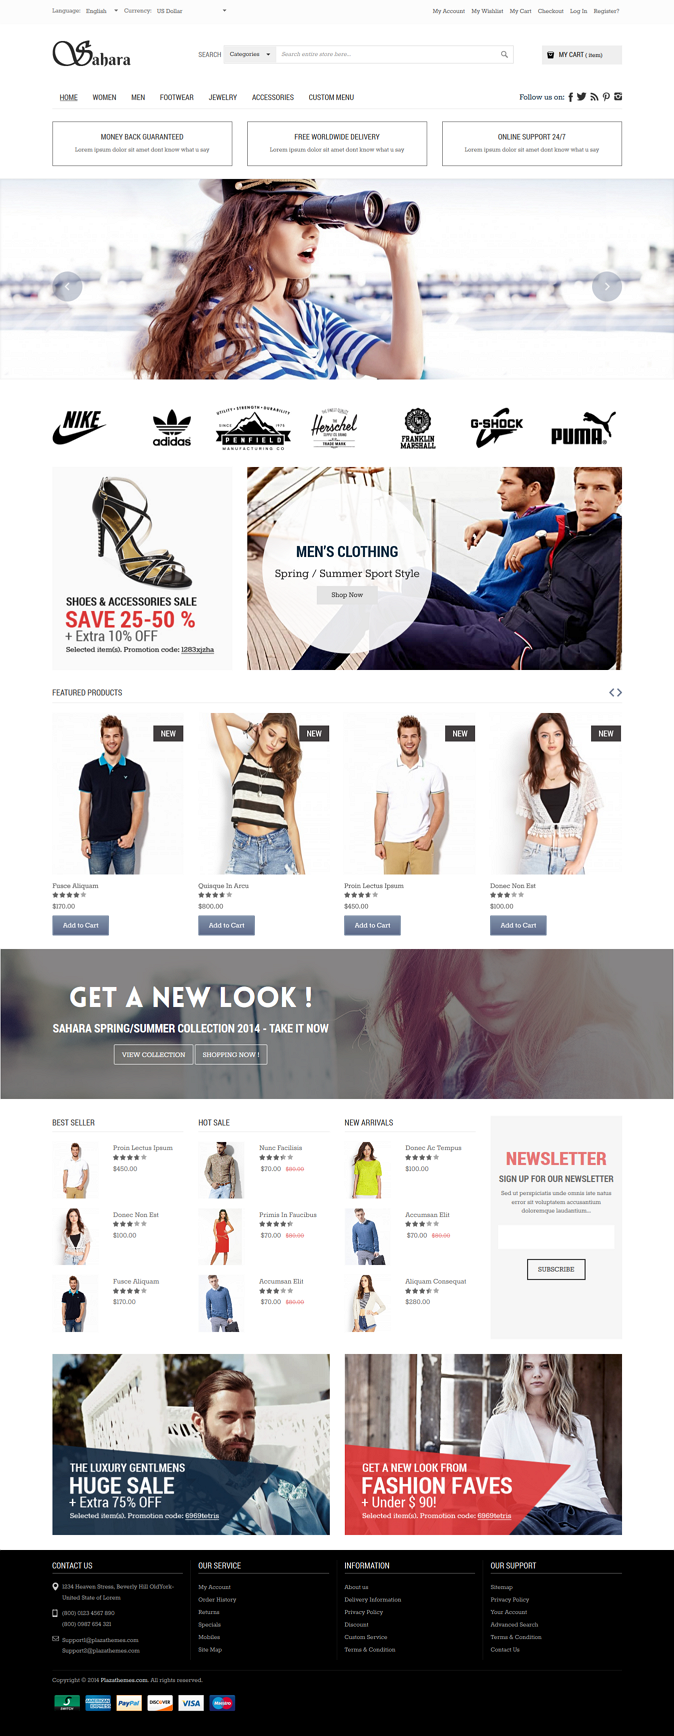 Sahara, the newest design from Plazathemes, has been created as a mega store Magento eCommerce s ...